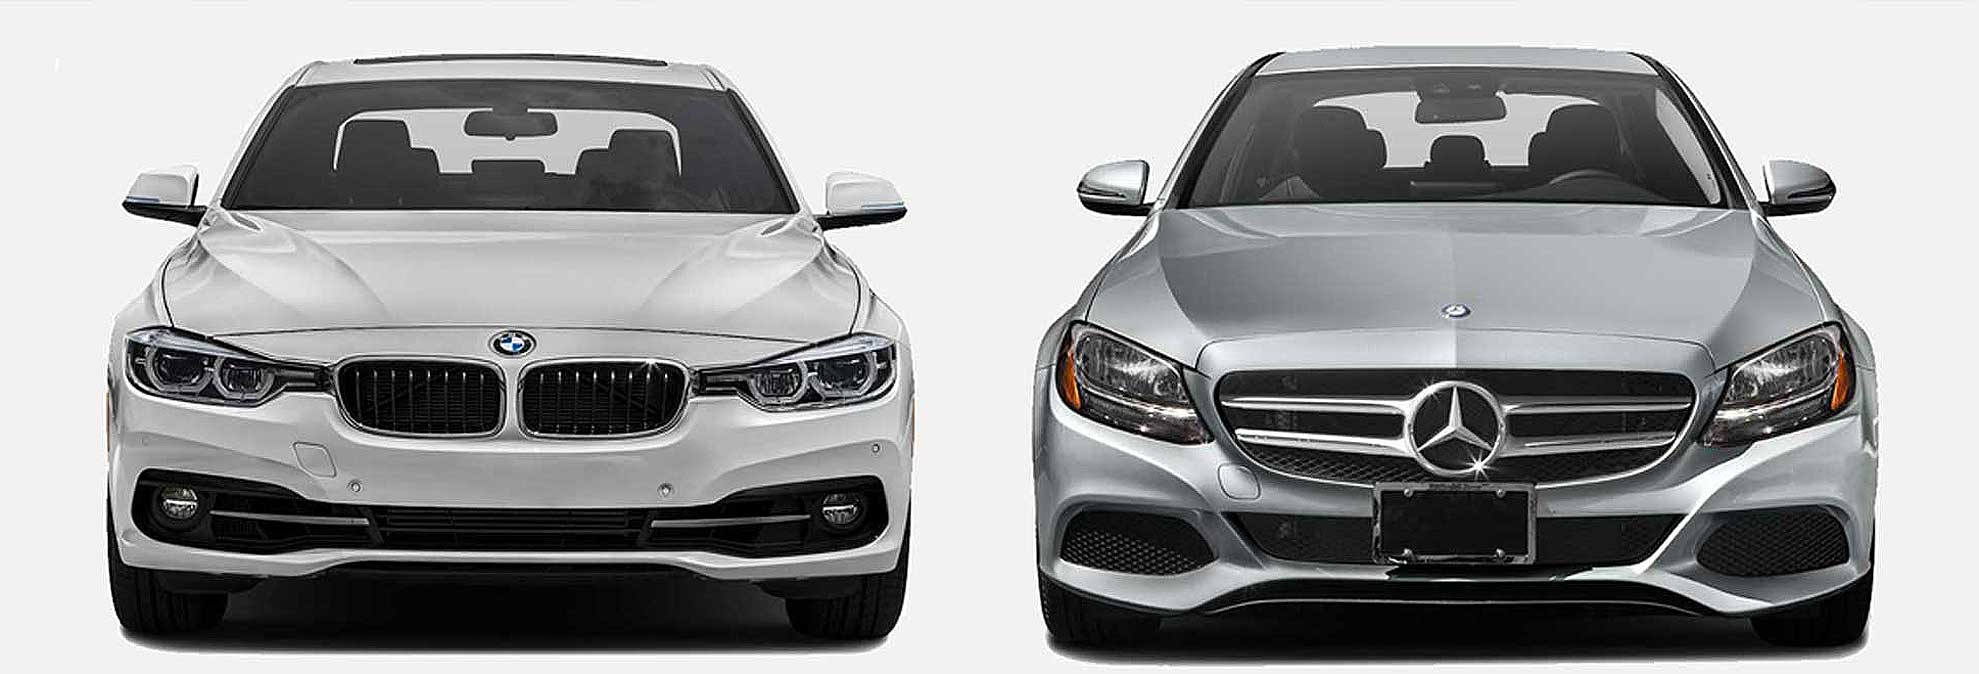 Bmw 3 Series Vs Mercedes Benz C Class Sports Sedans